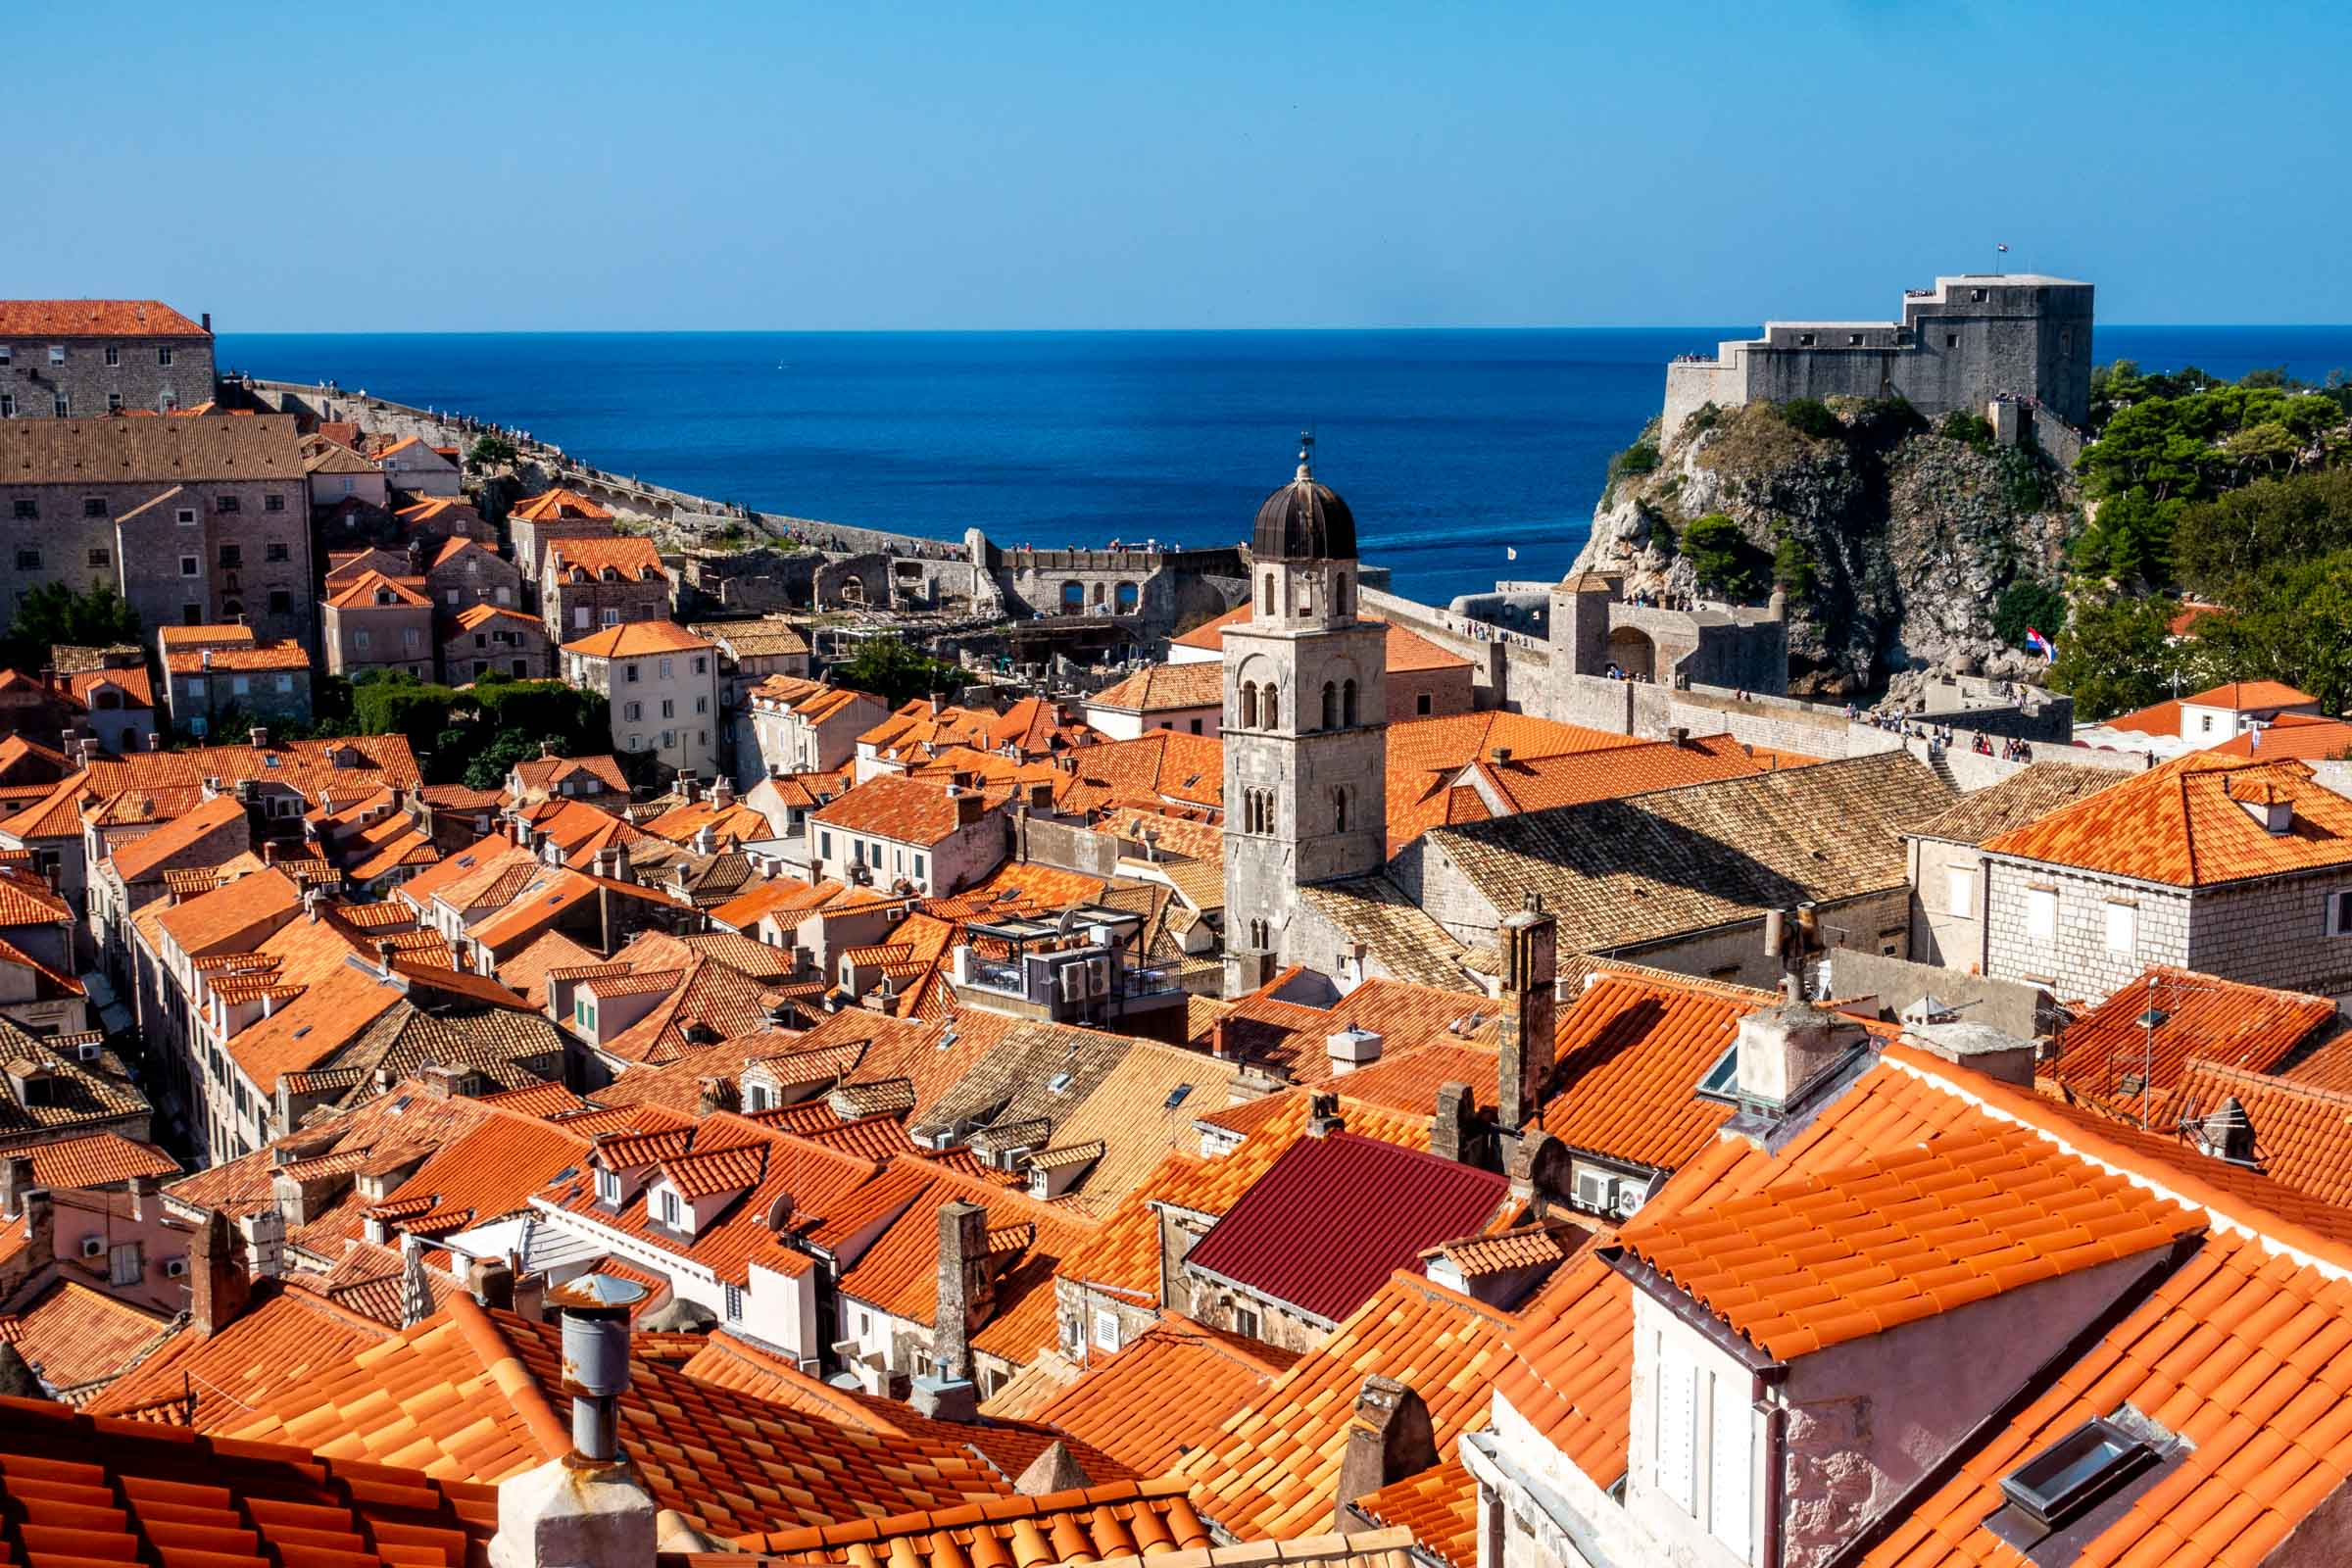 Red roofs of Dubrovnik, Croatia, with the ocean in the distance